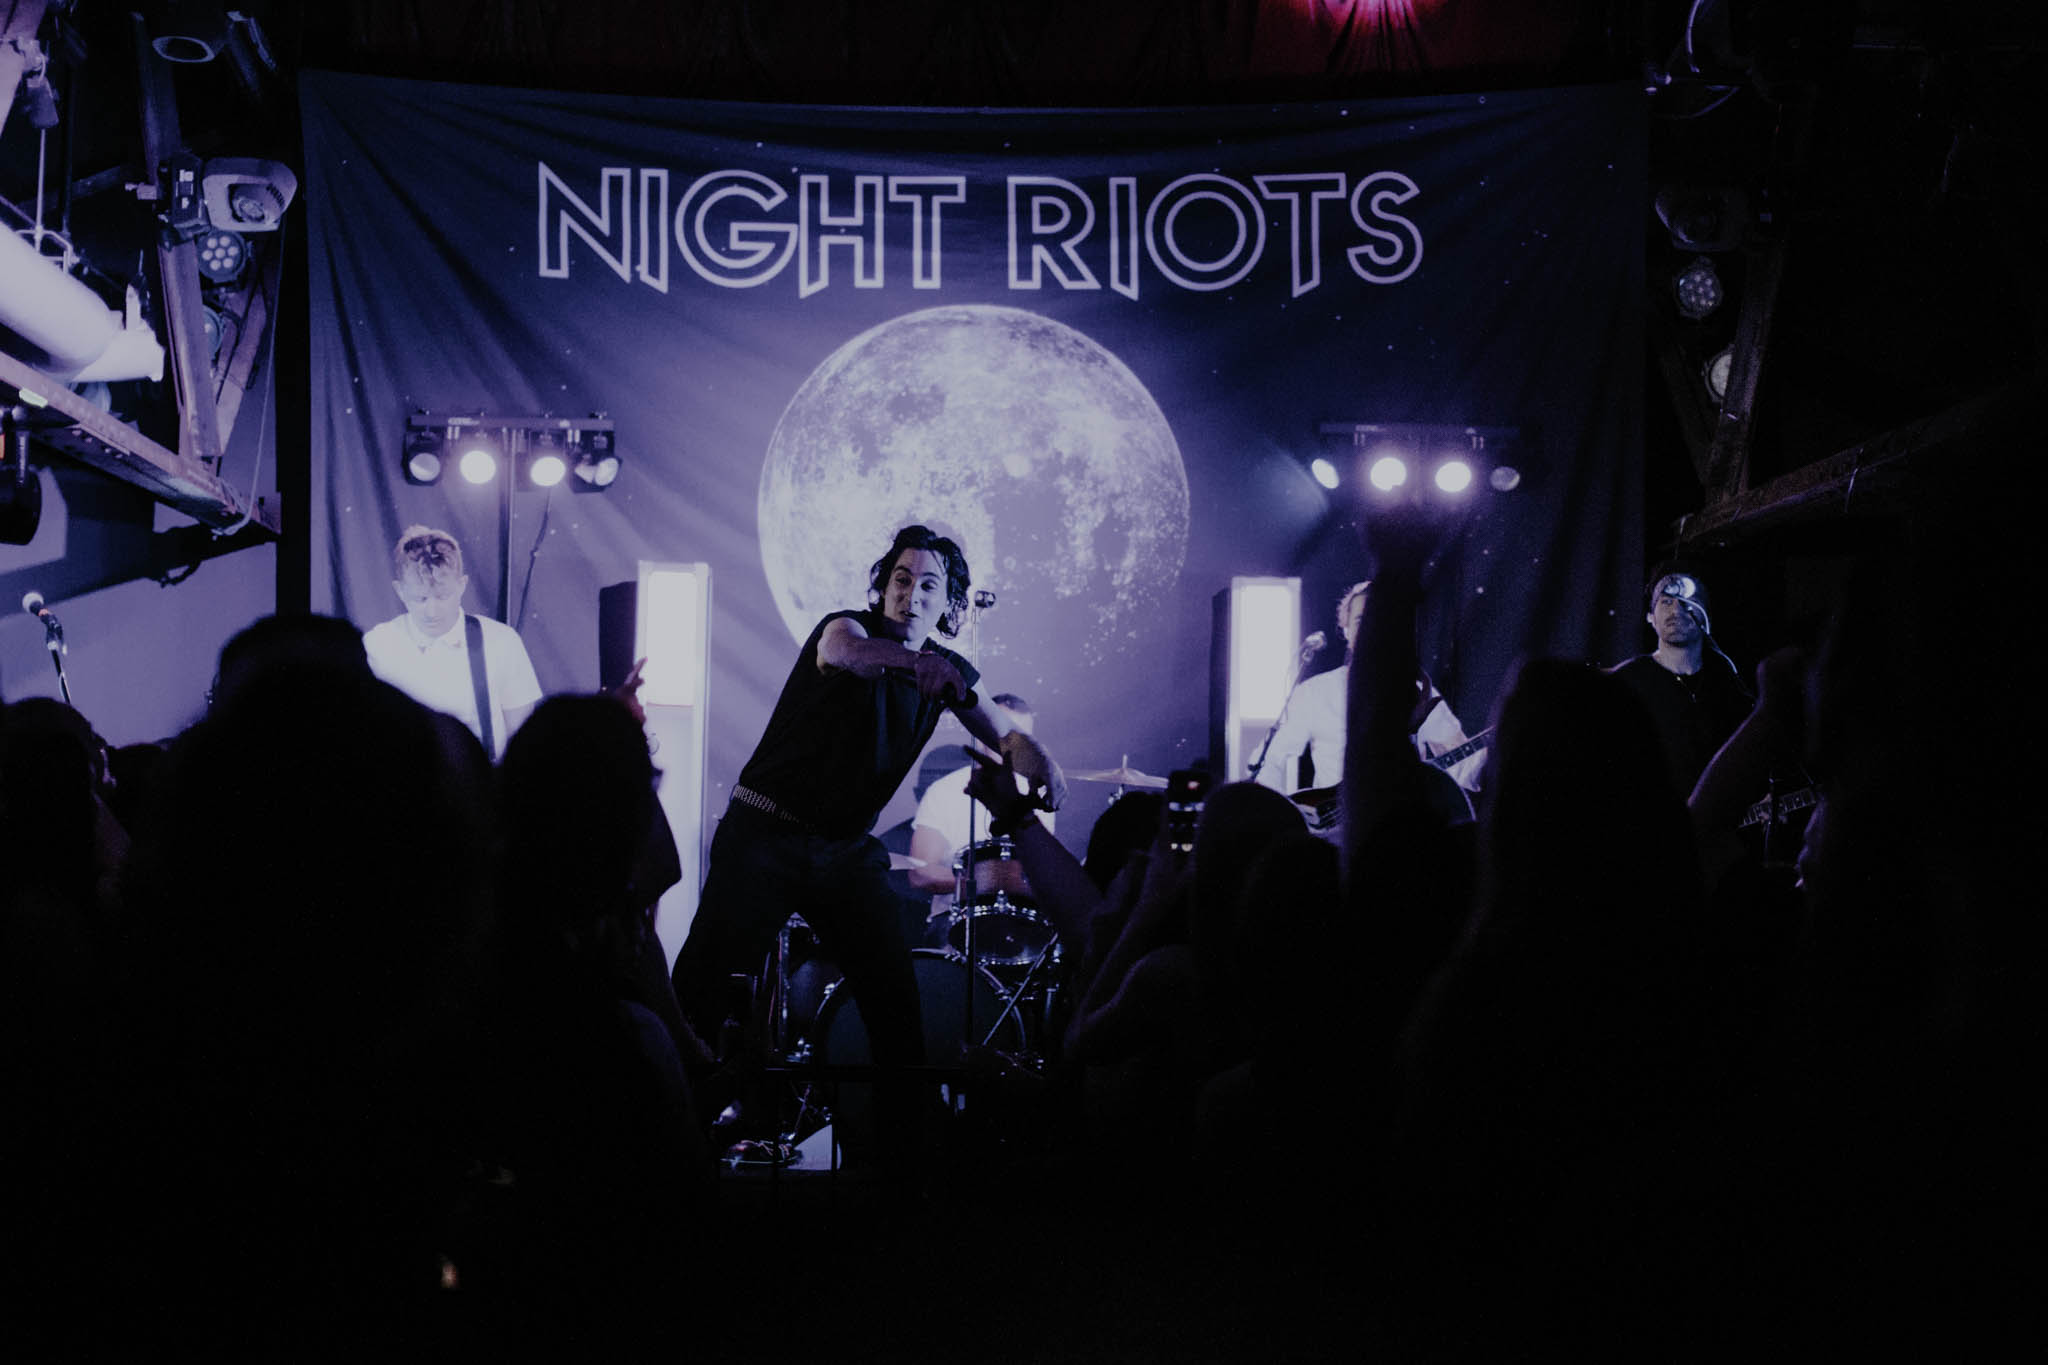 NIGHT RIOTS